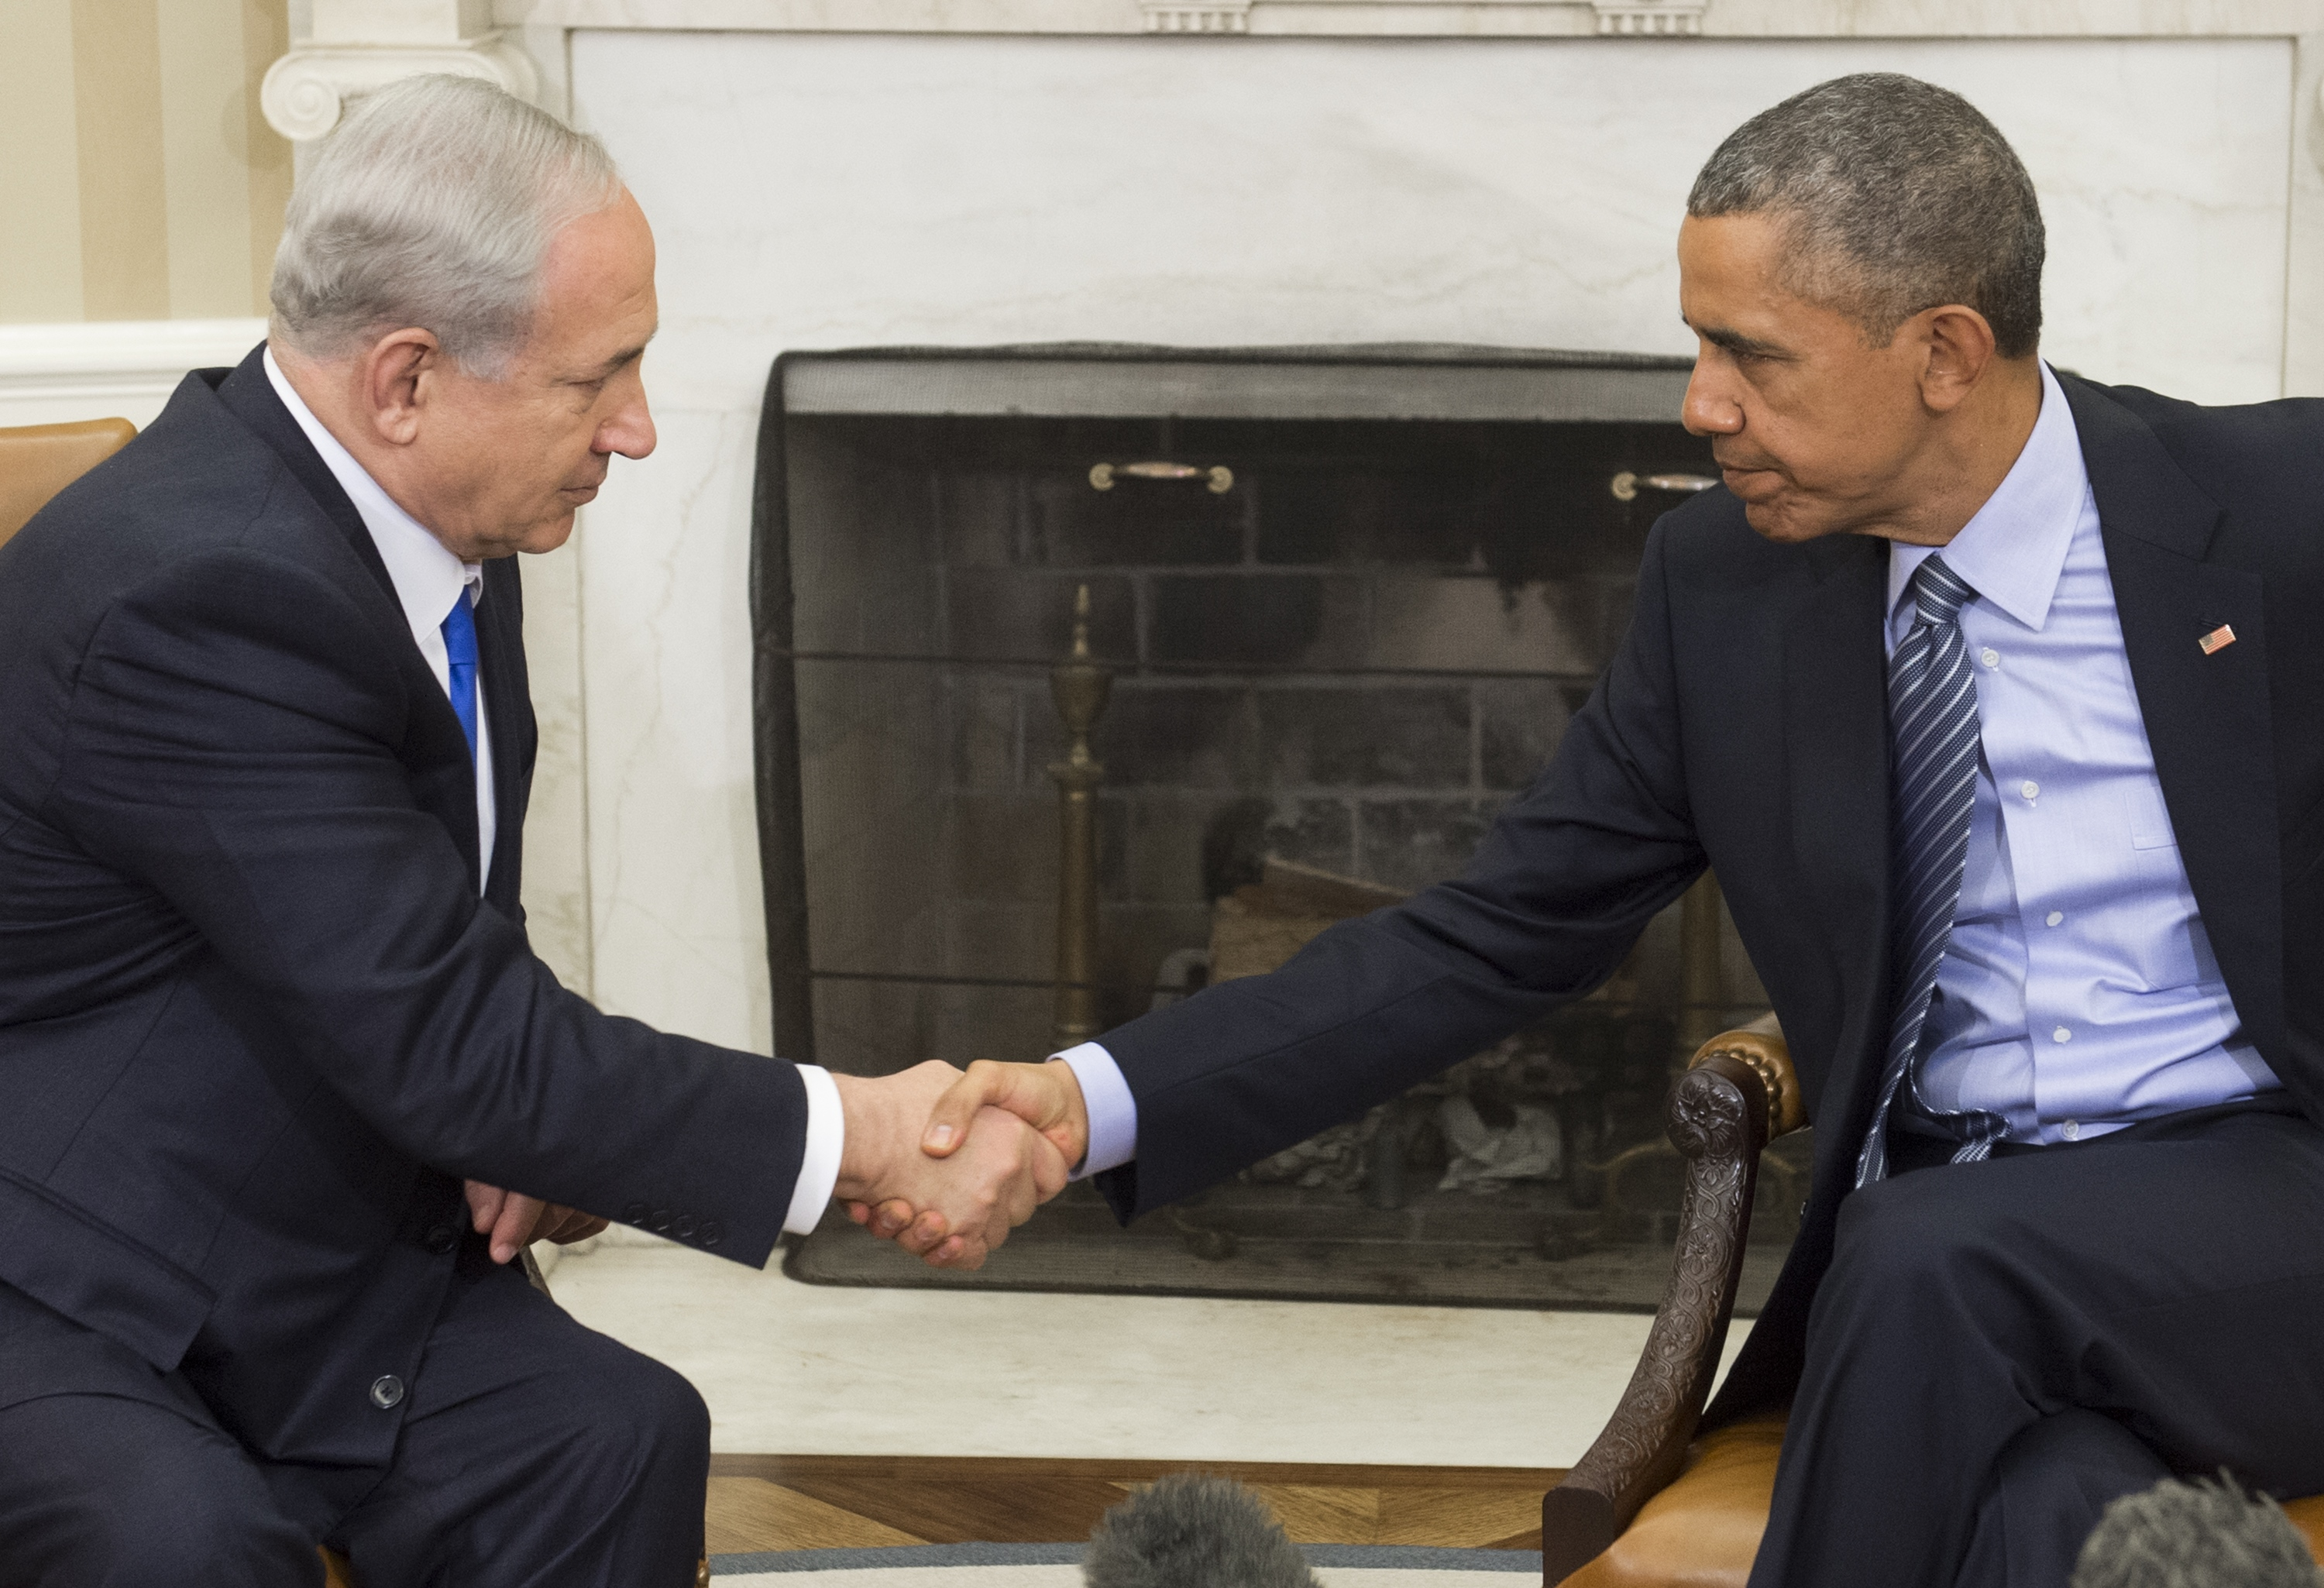 US-ISRAEL-DIPLOMACY-OBAMA-NETANYAHU